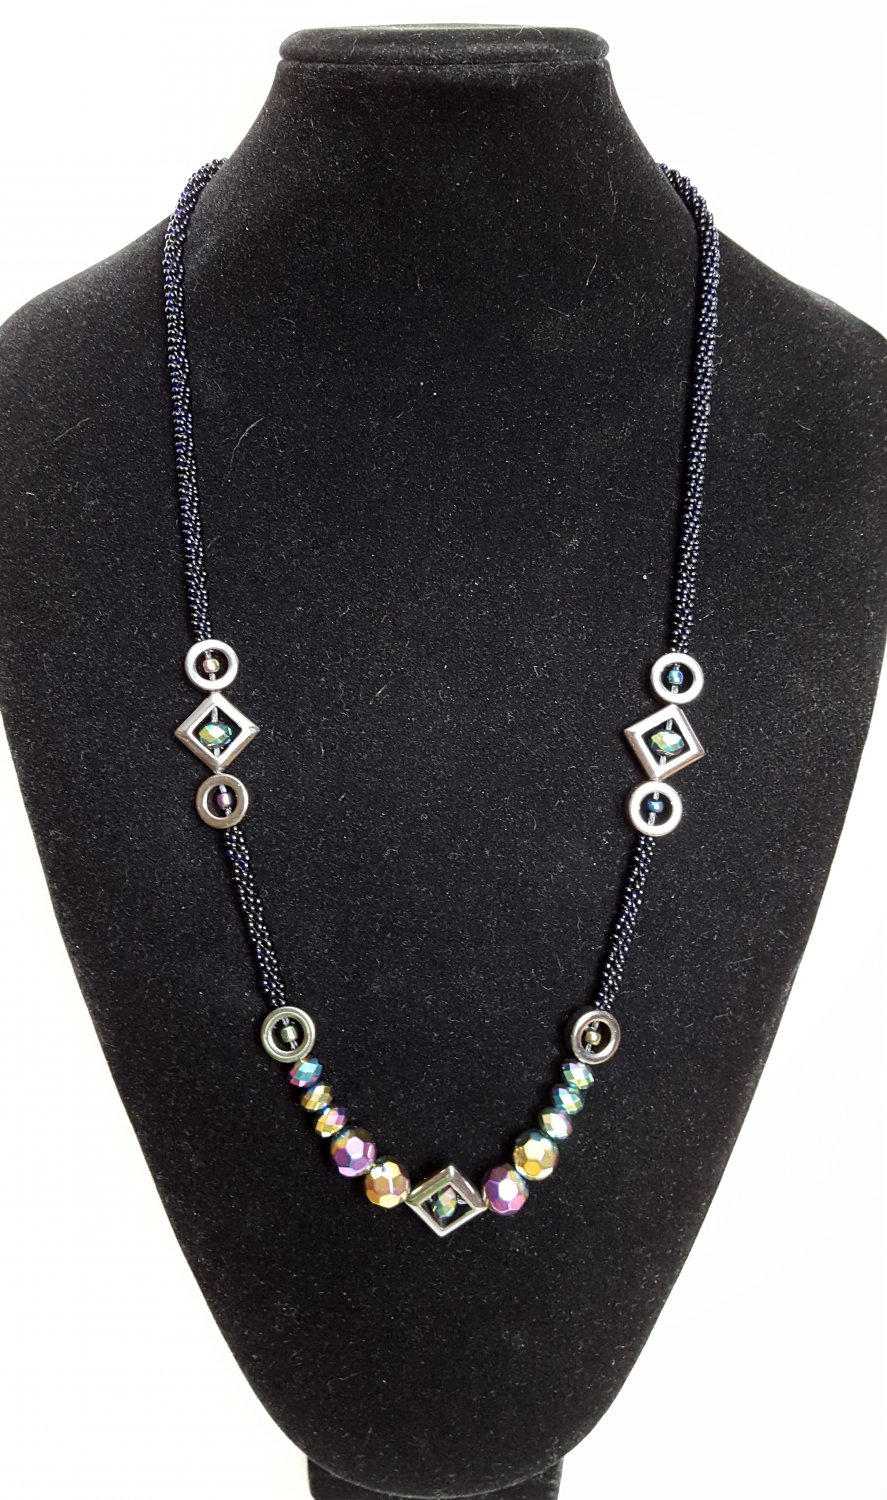 Geometric Beaded Necklace